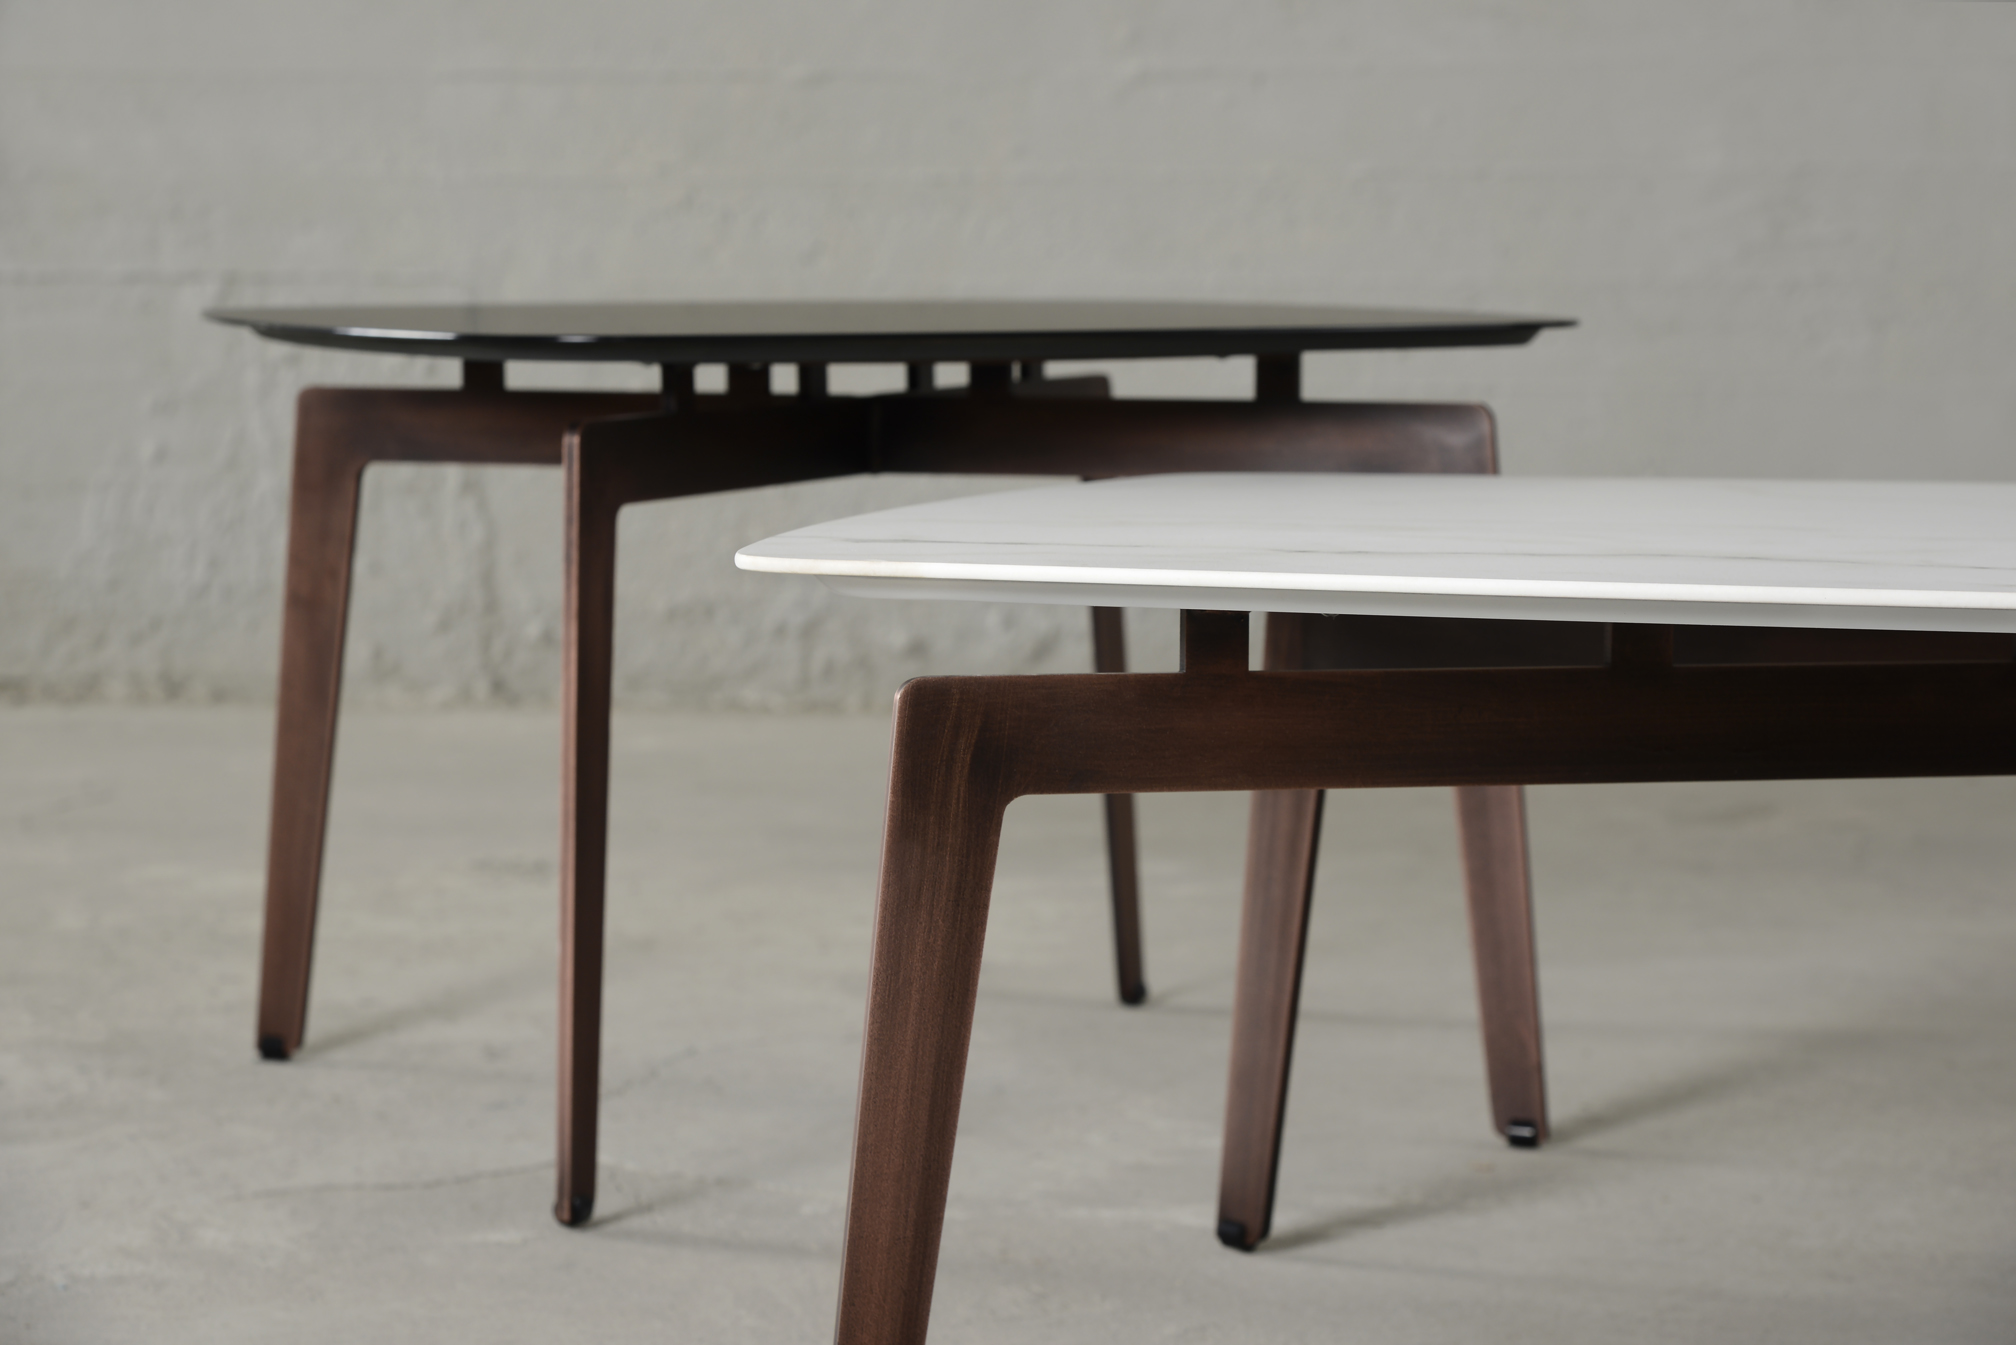 Coffee Tables - SCIENCE AT ITS BEST